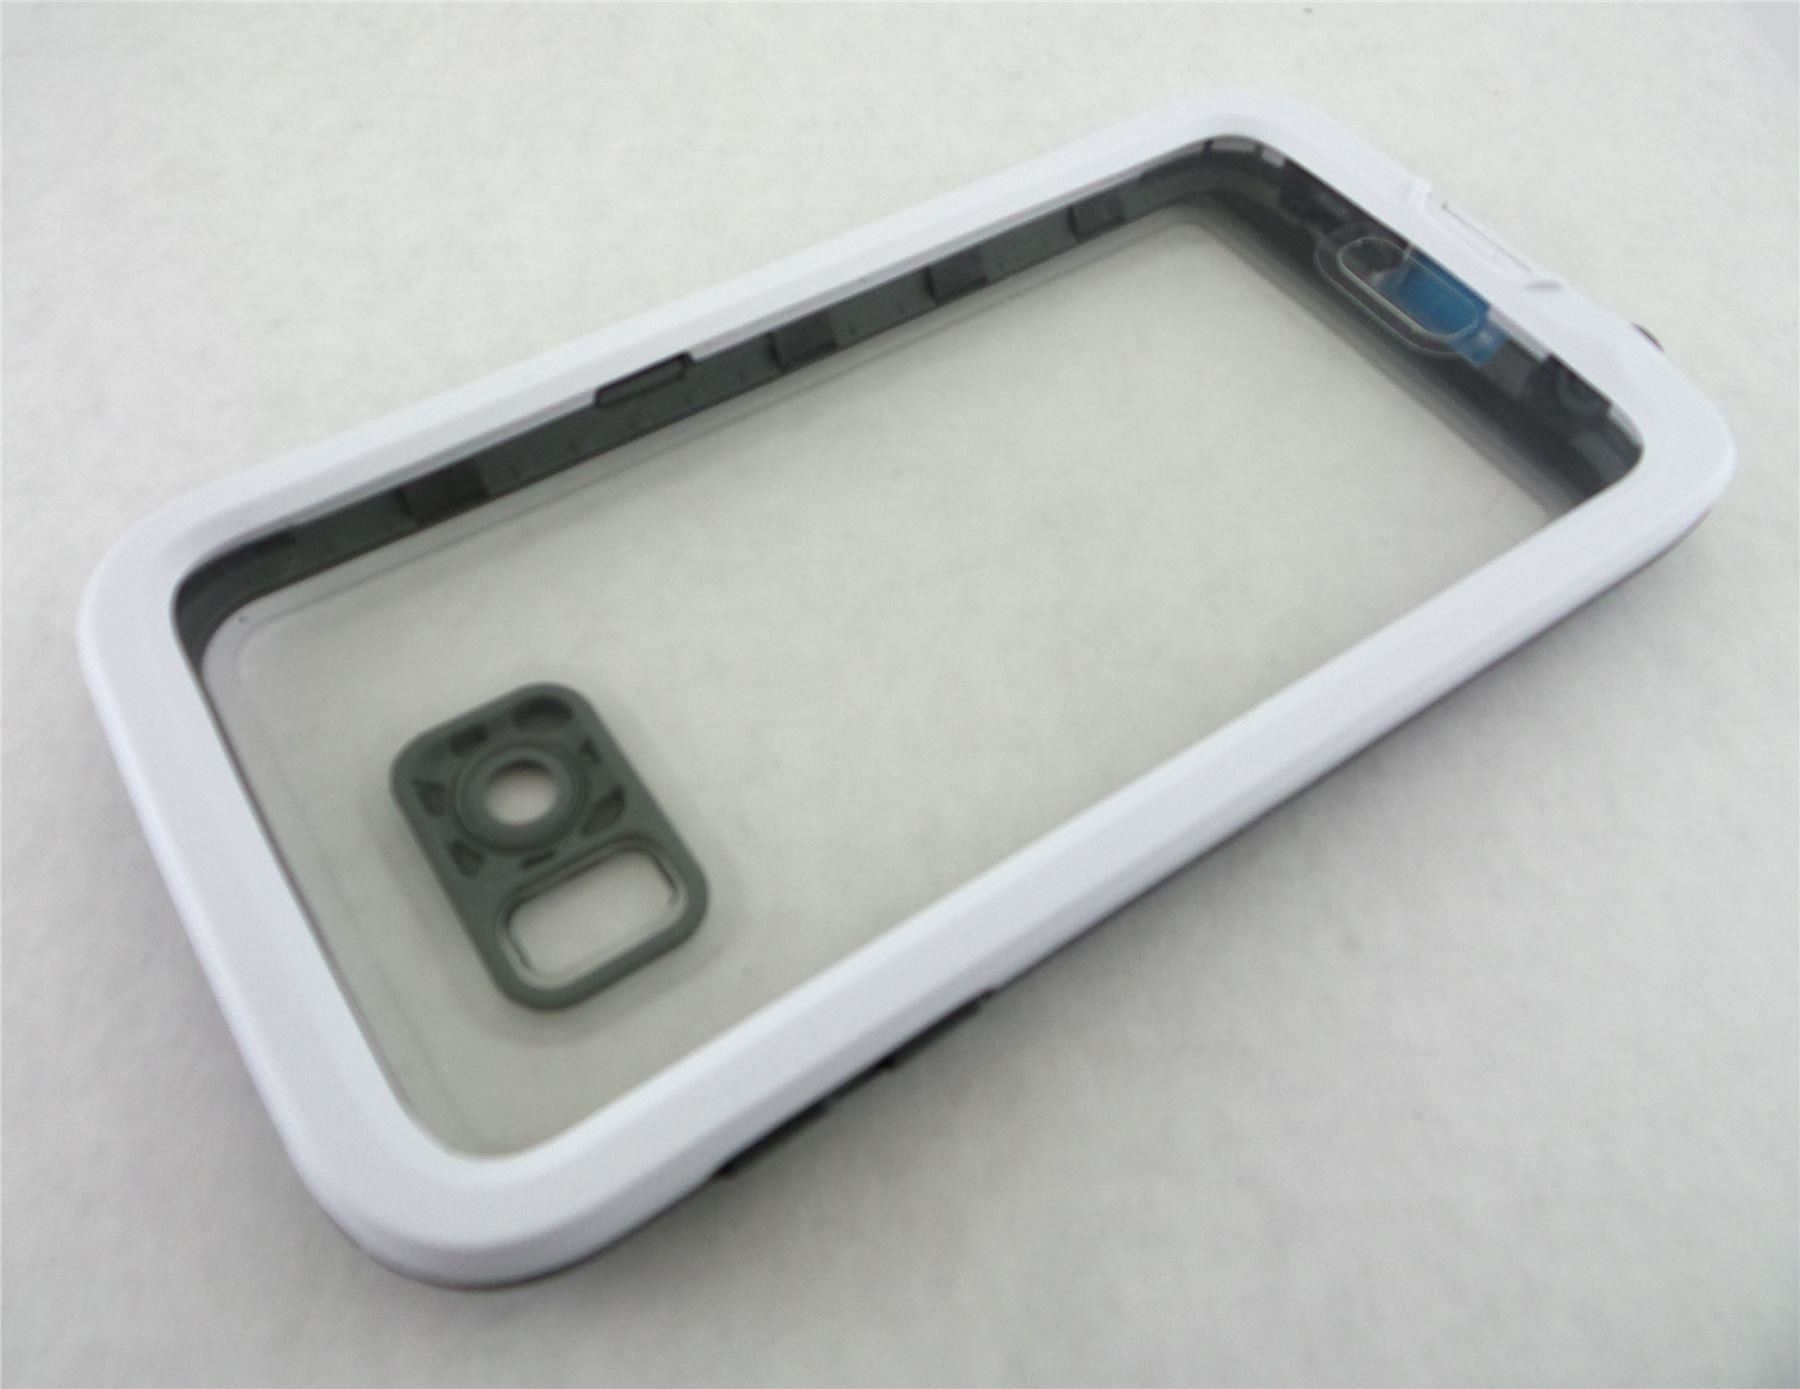 Lifeproof Case Parts Galaxy S6 Samsung Fre For Waterproof